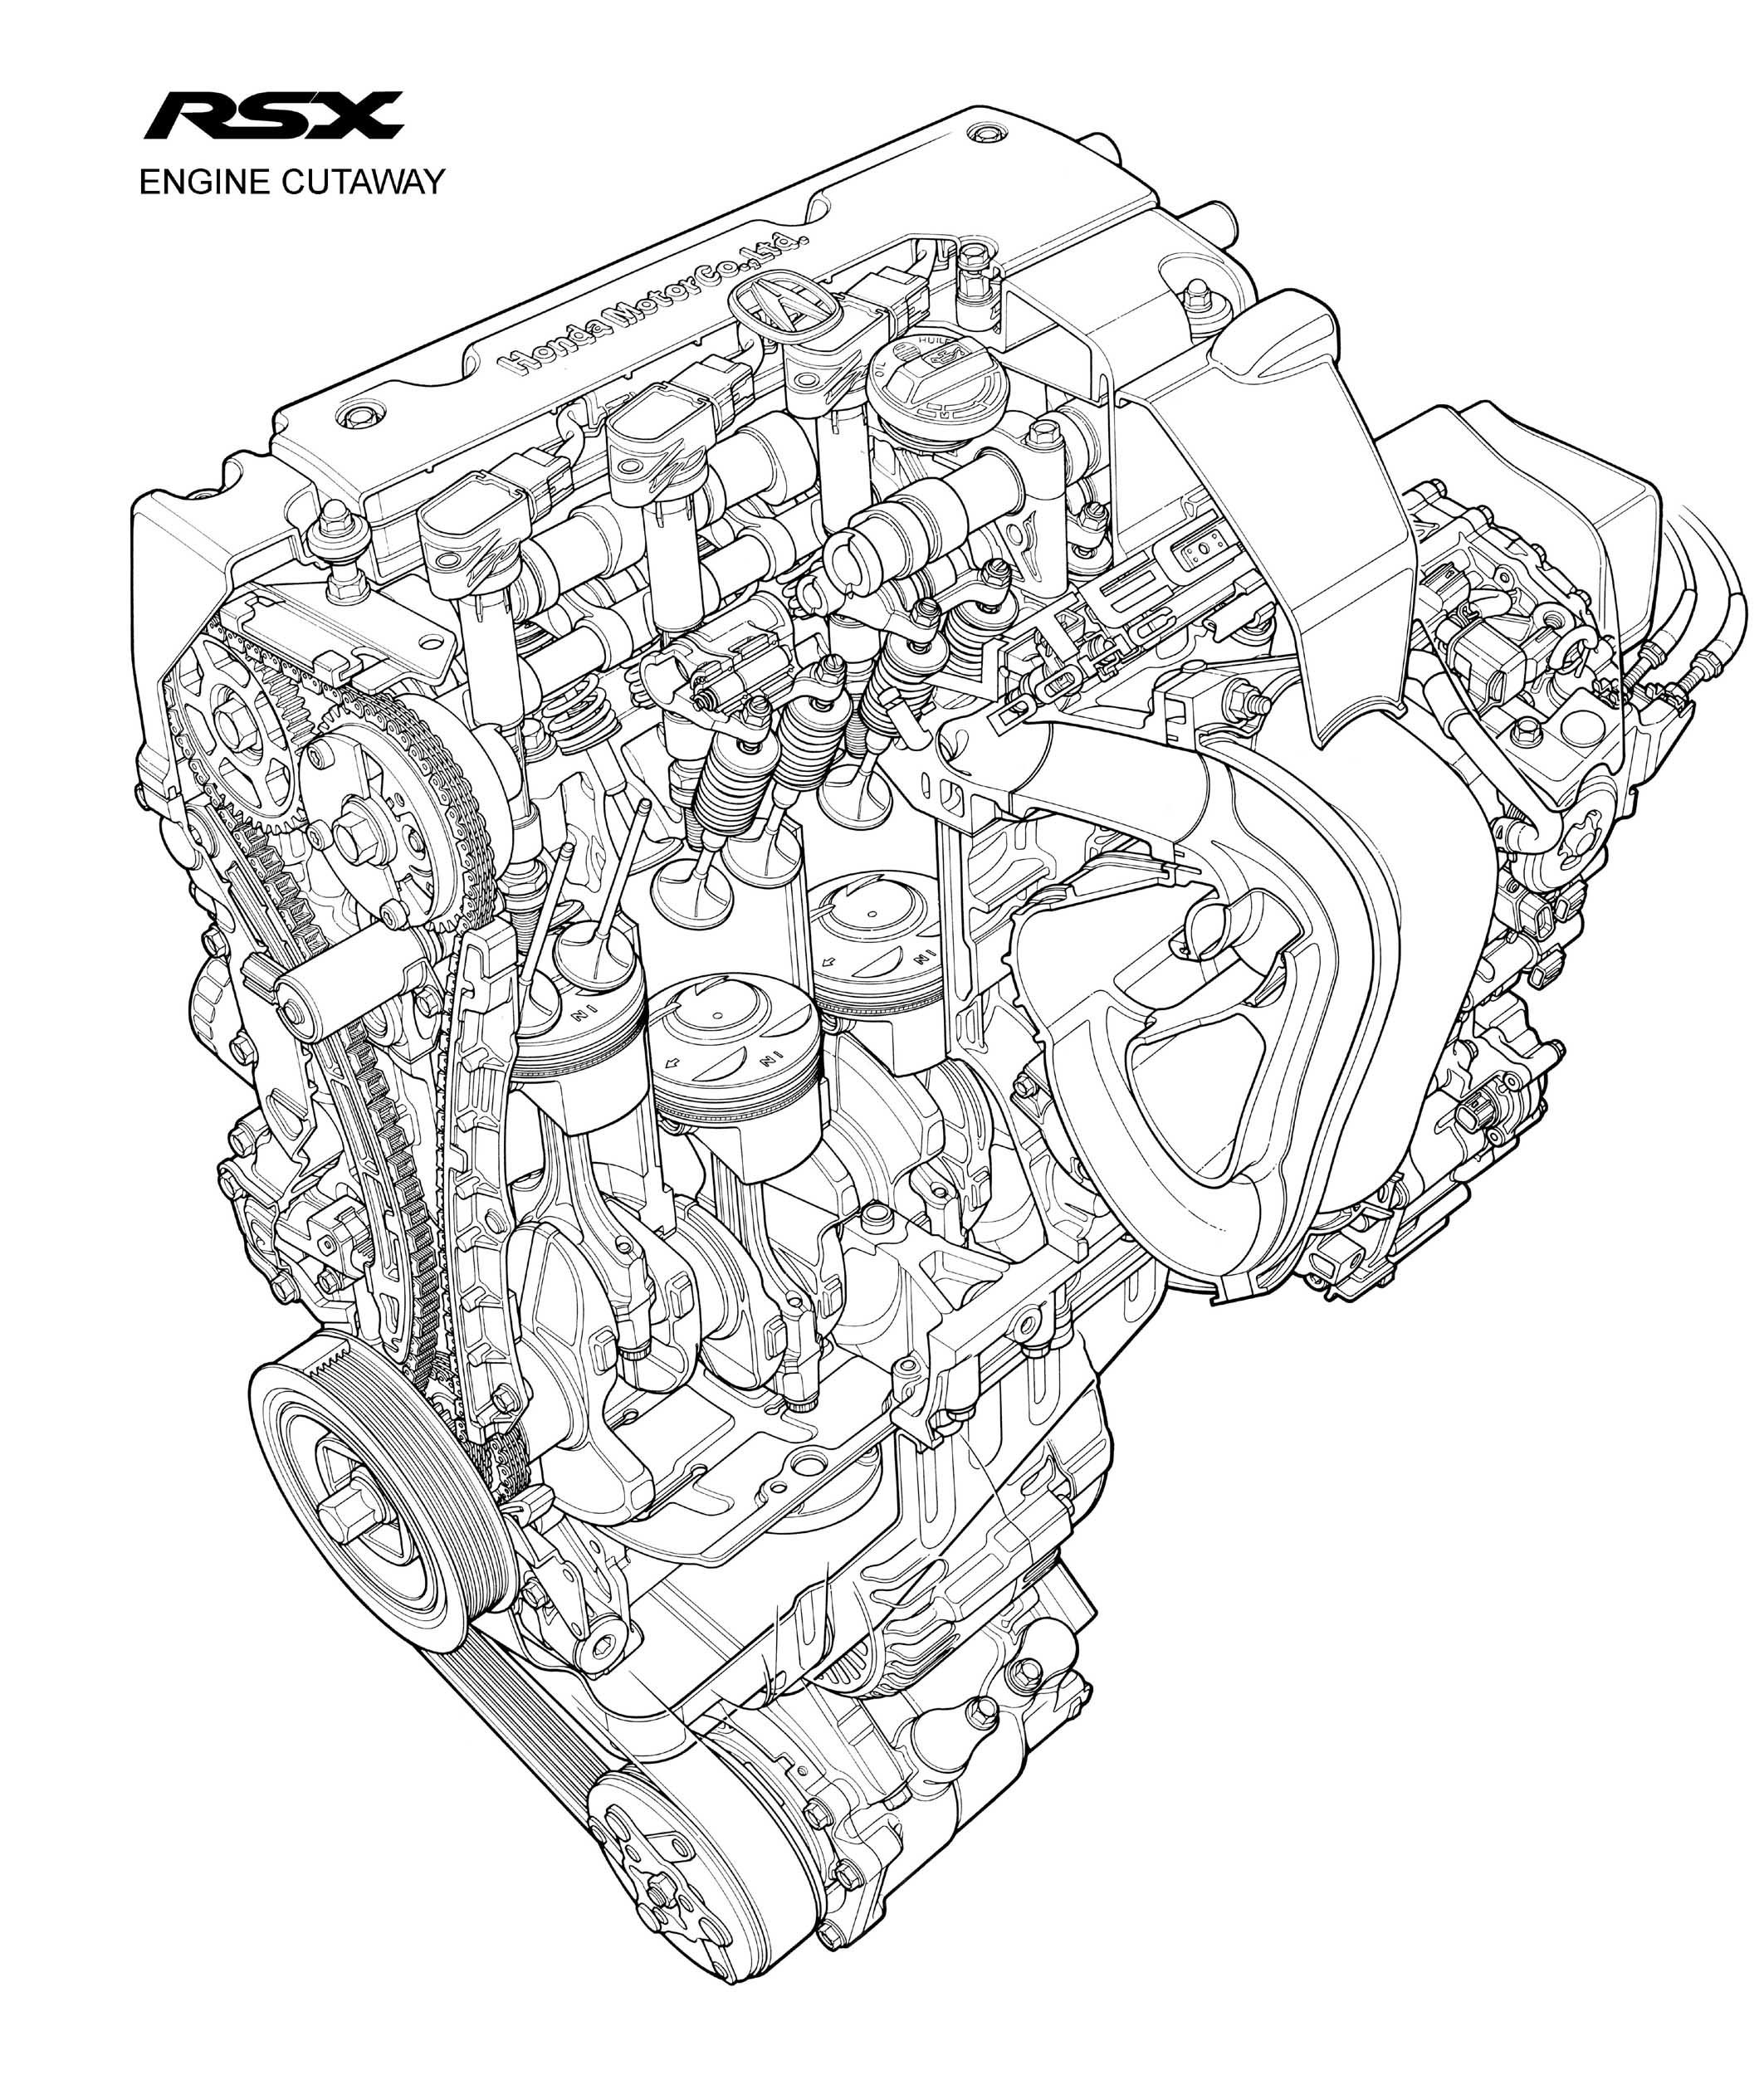 Acura Rsx Engine Cutaway With Images